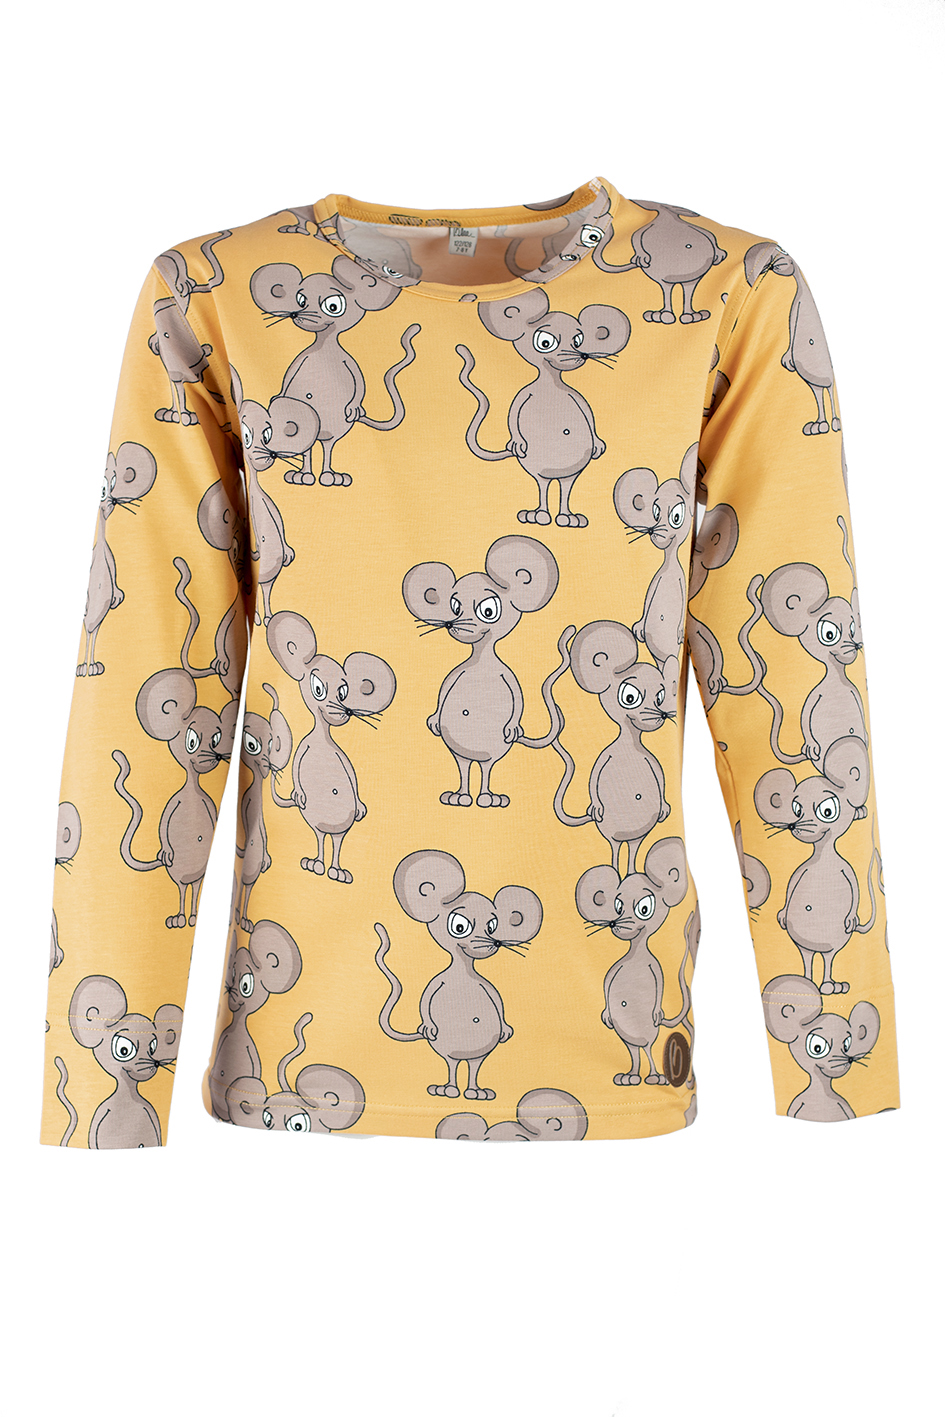 BILBO Shirt, Mouse Yellow